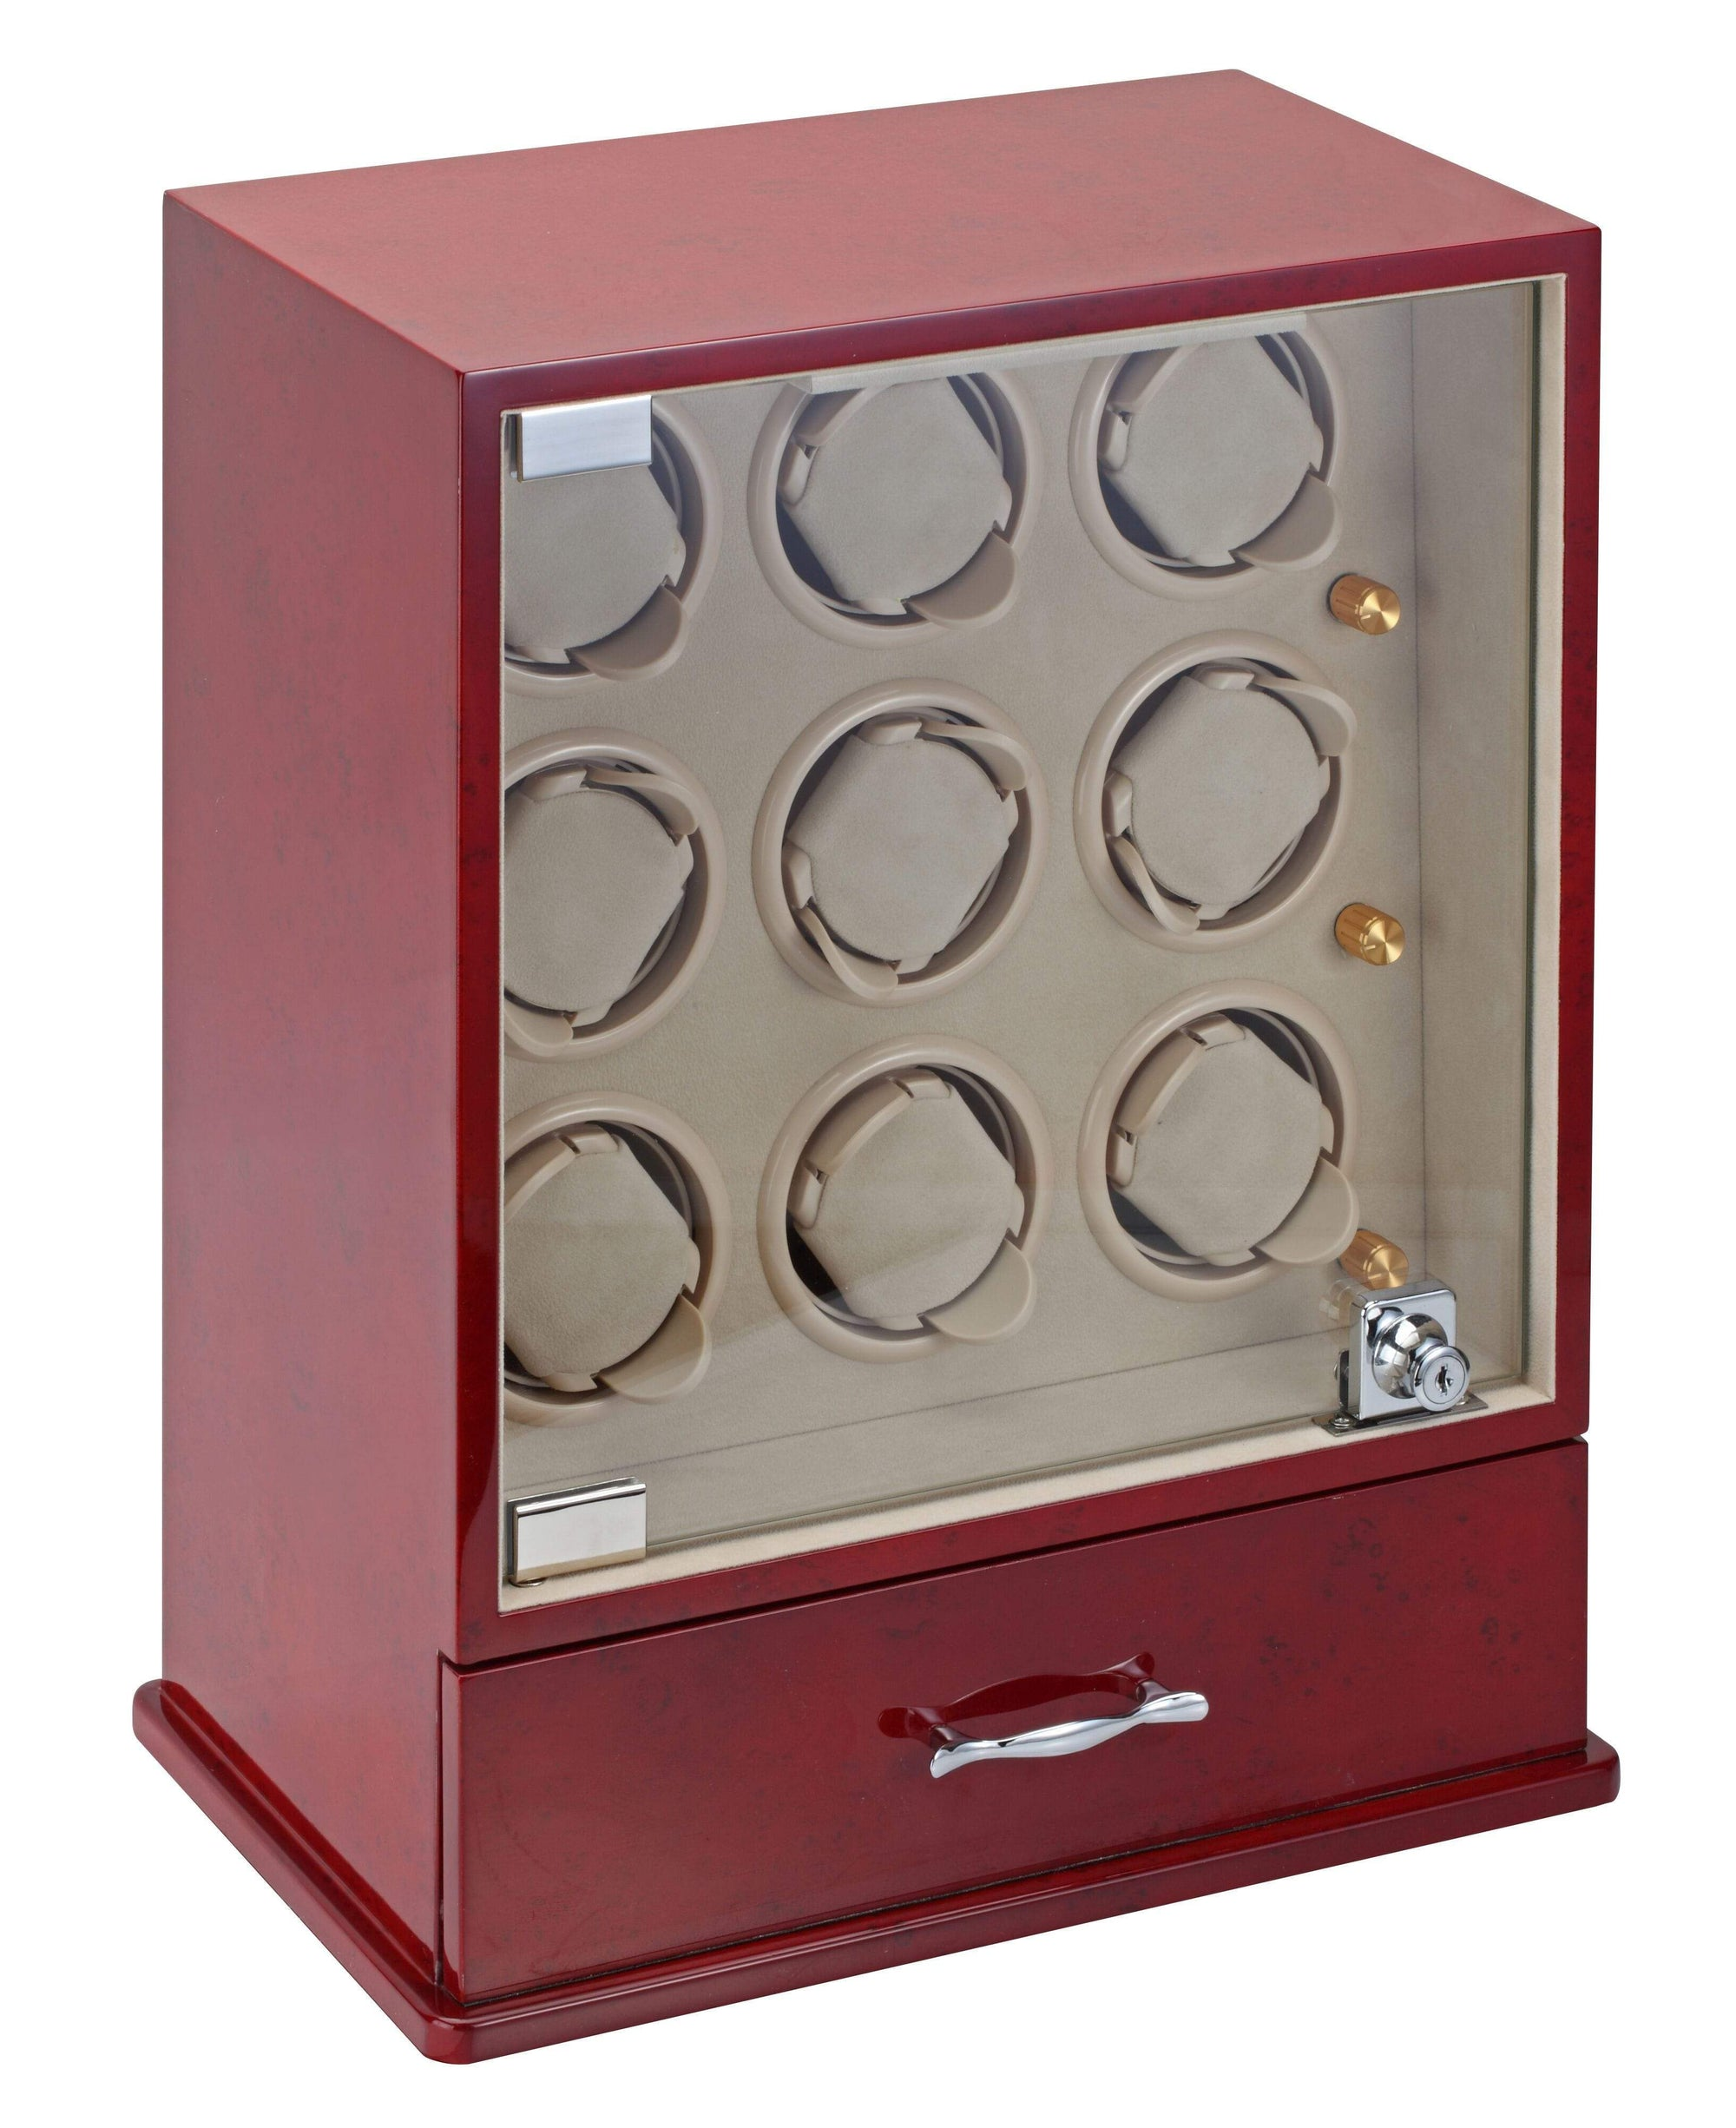 Diplomat Estate Cherry Wood Finish Nine Watch Winder with Cream Interior and Additional Storage for 10 Watches and Smart Internal Bi-Directional Timer Control Armadillo Safe and Vault